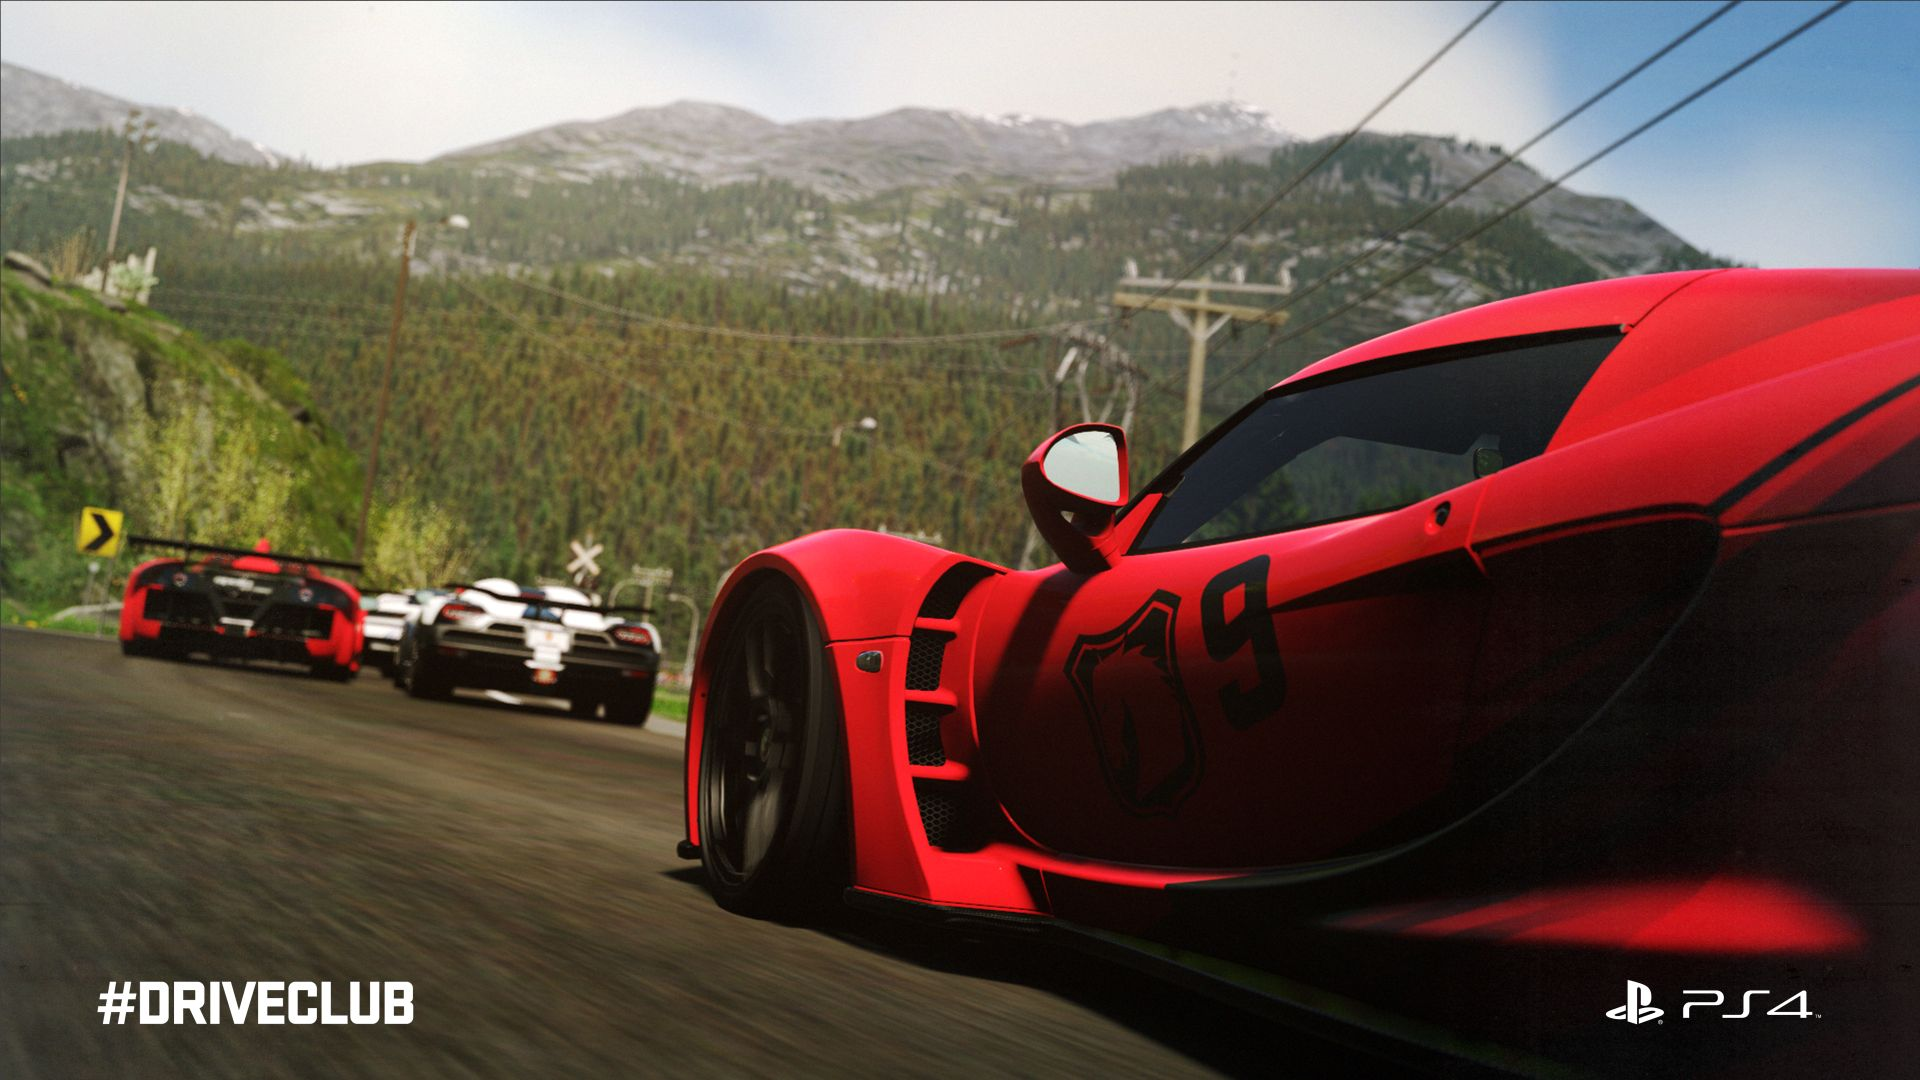 DriveClub raw race gameplay videos are visually dazzling